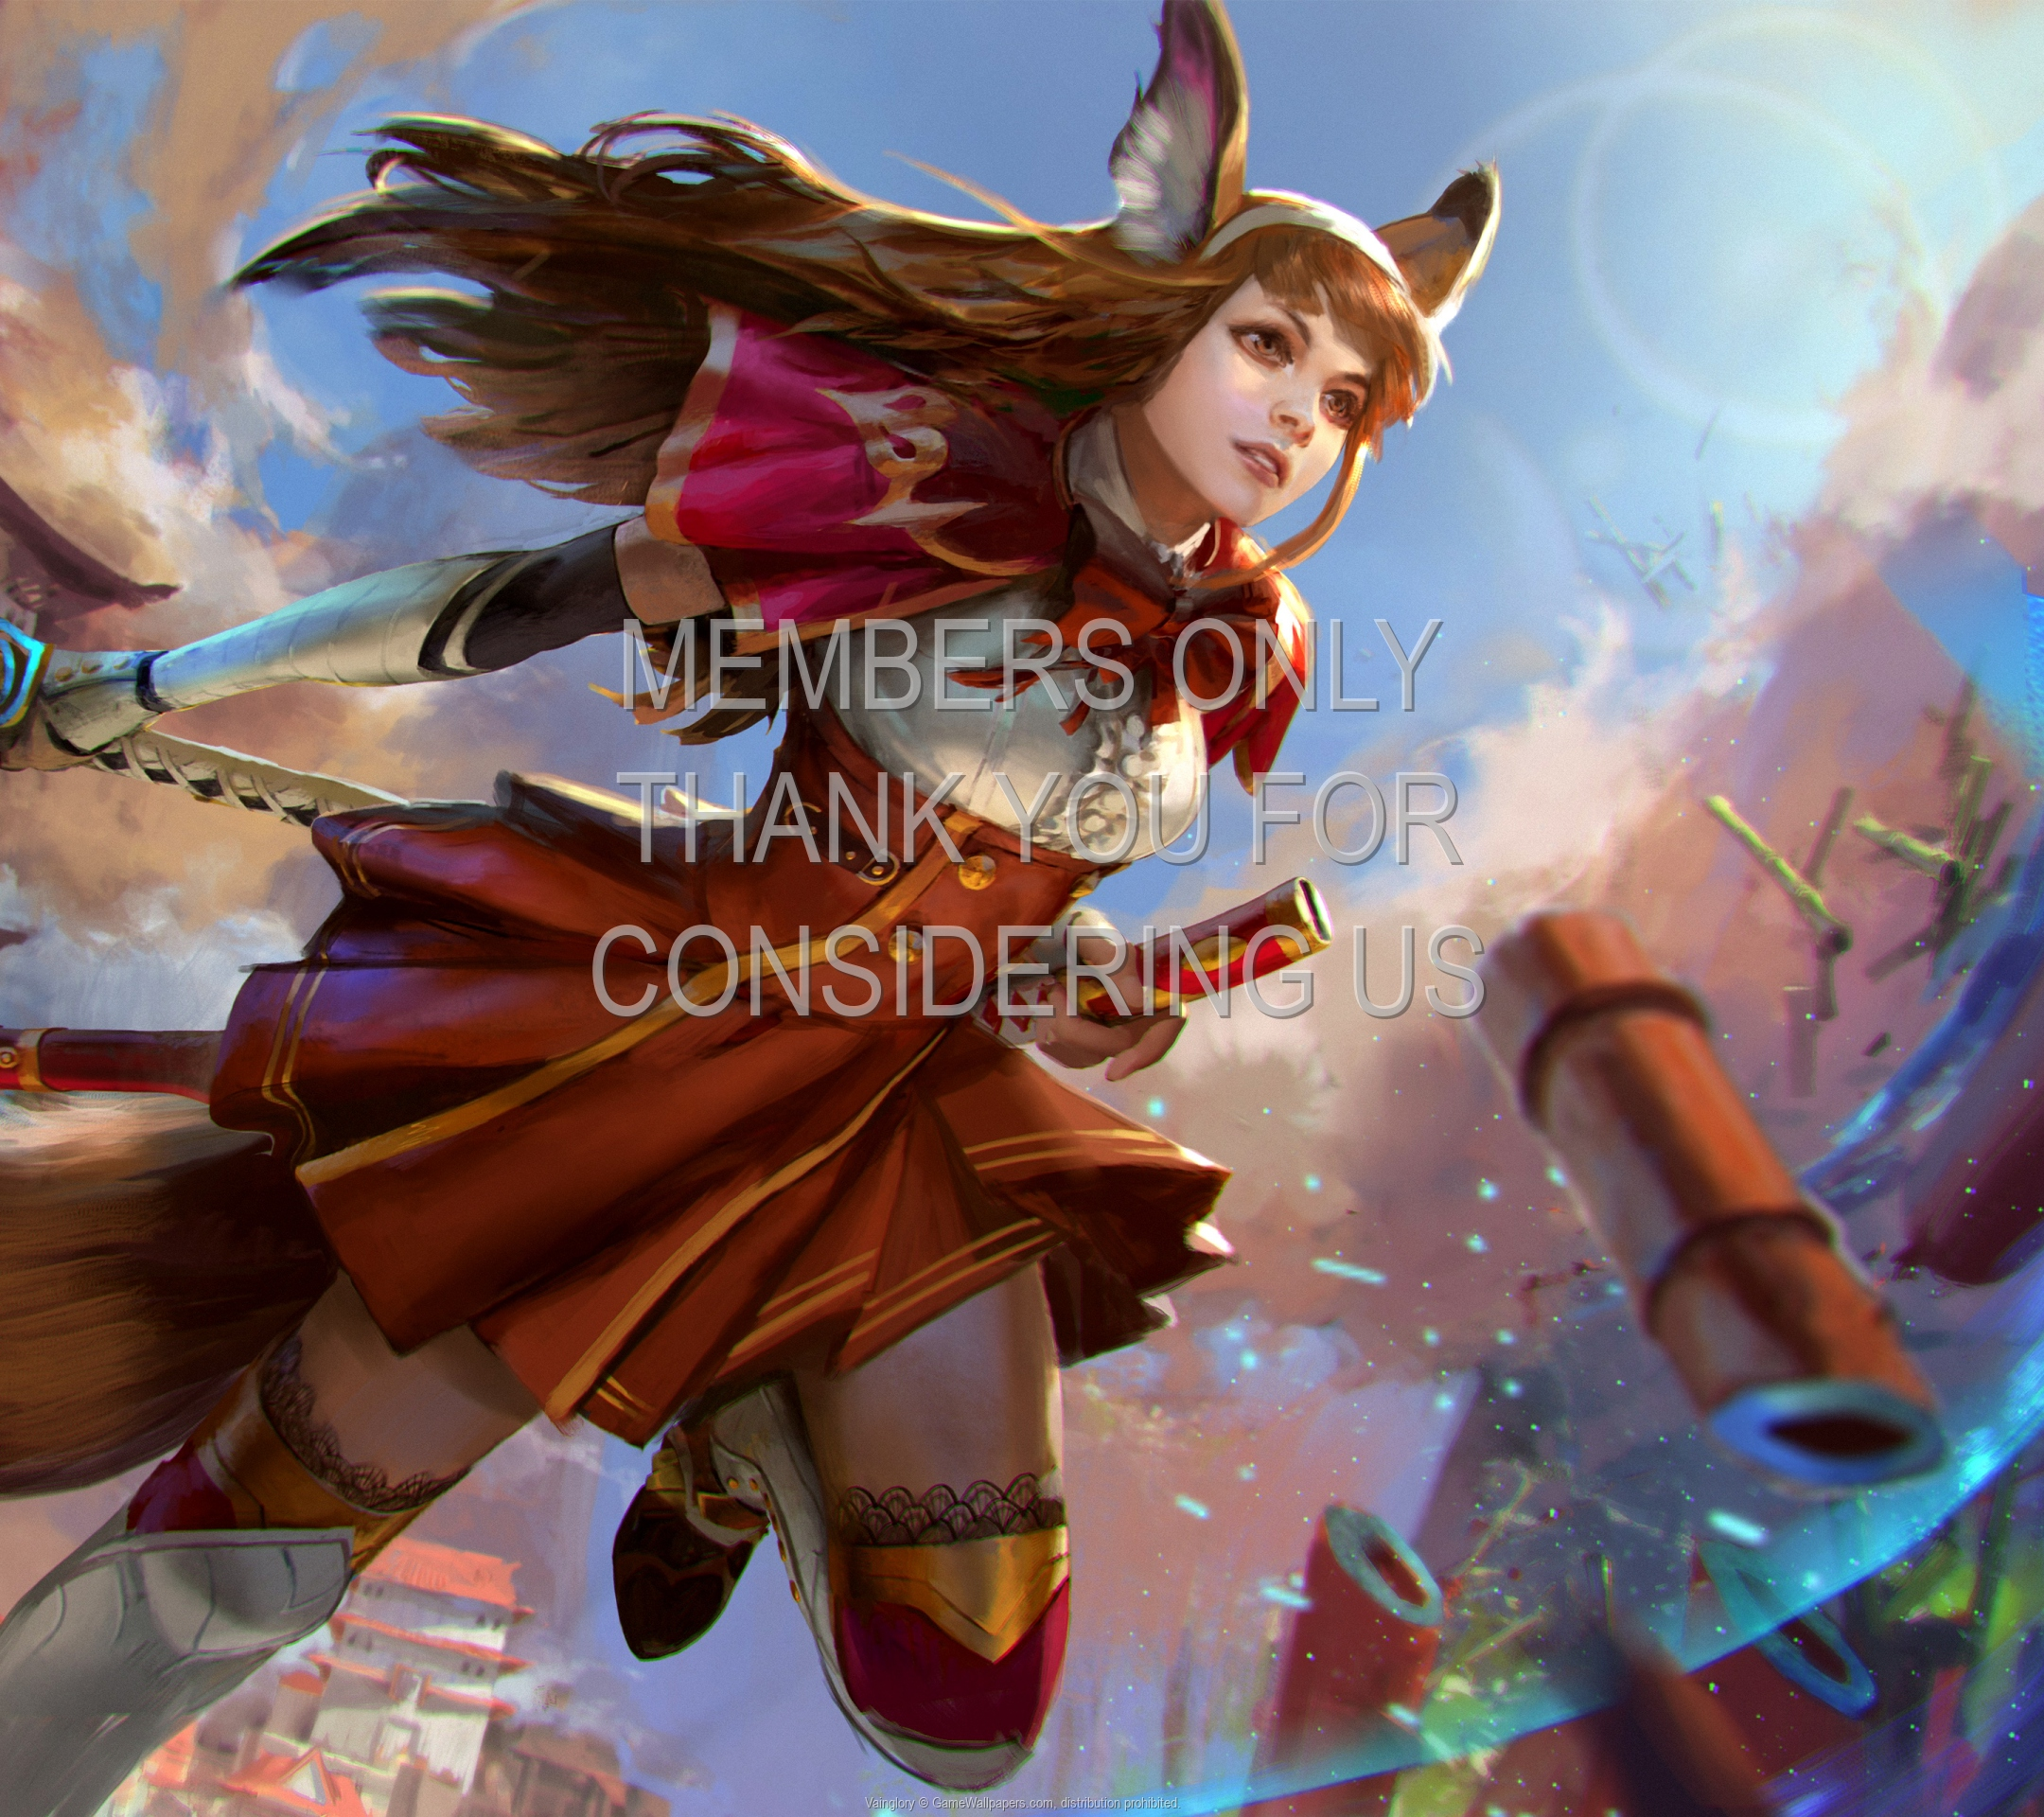 Vainglory 1920x1080 Mobile wallpaper or background 04